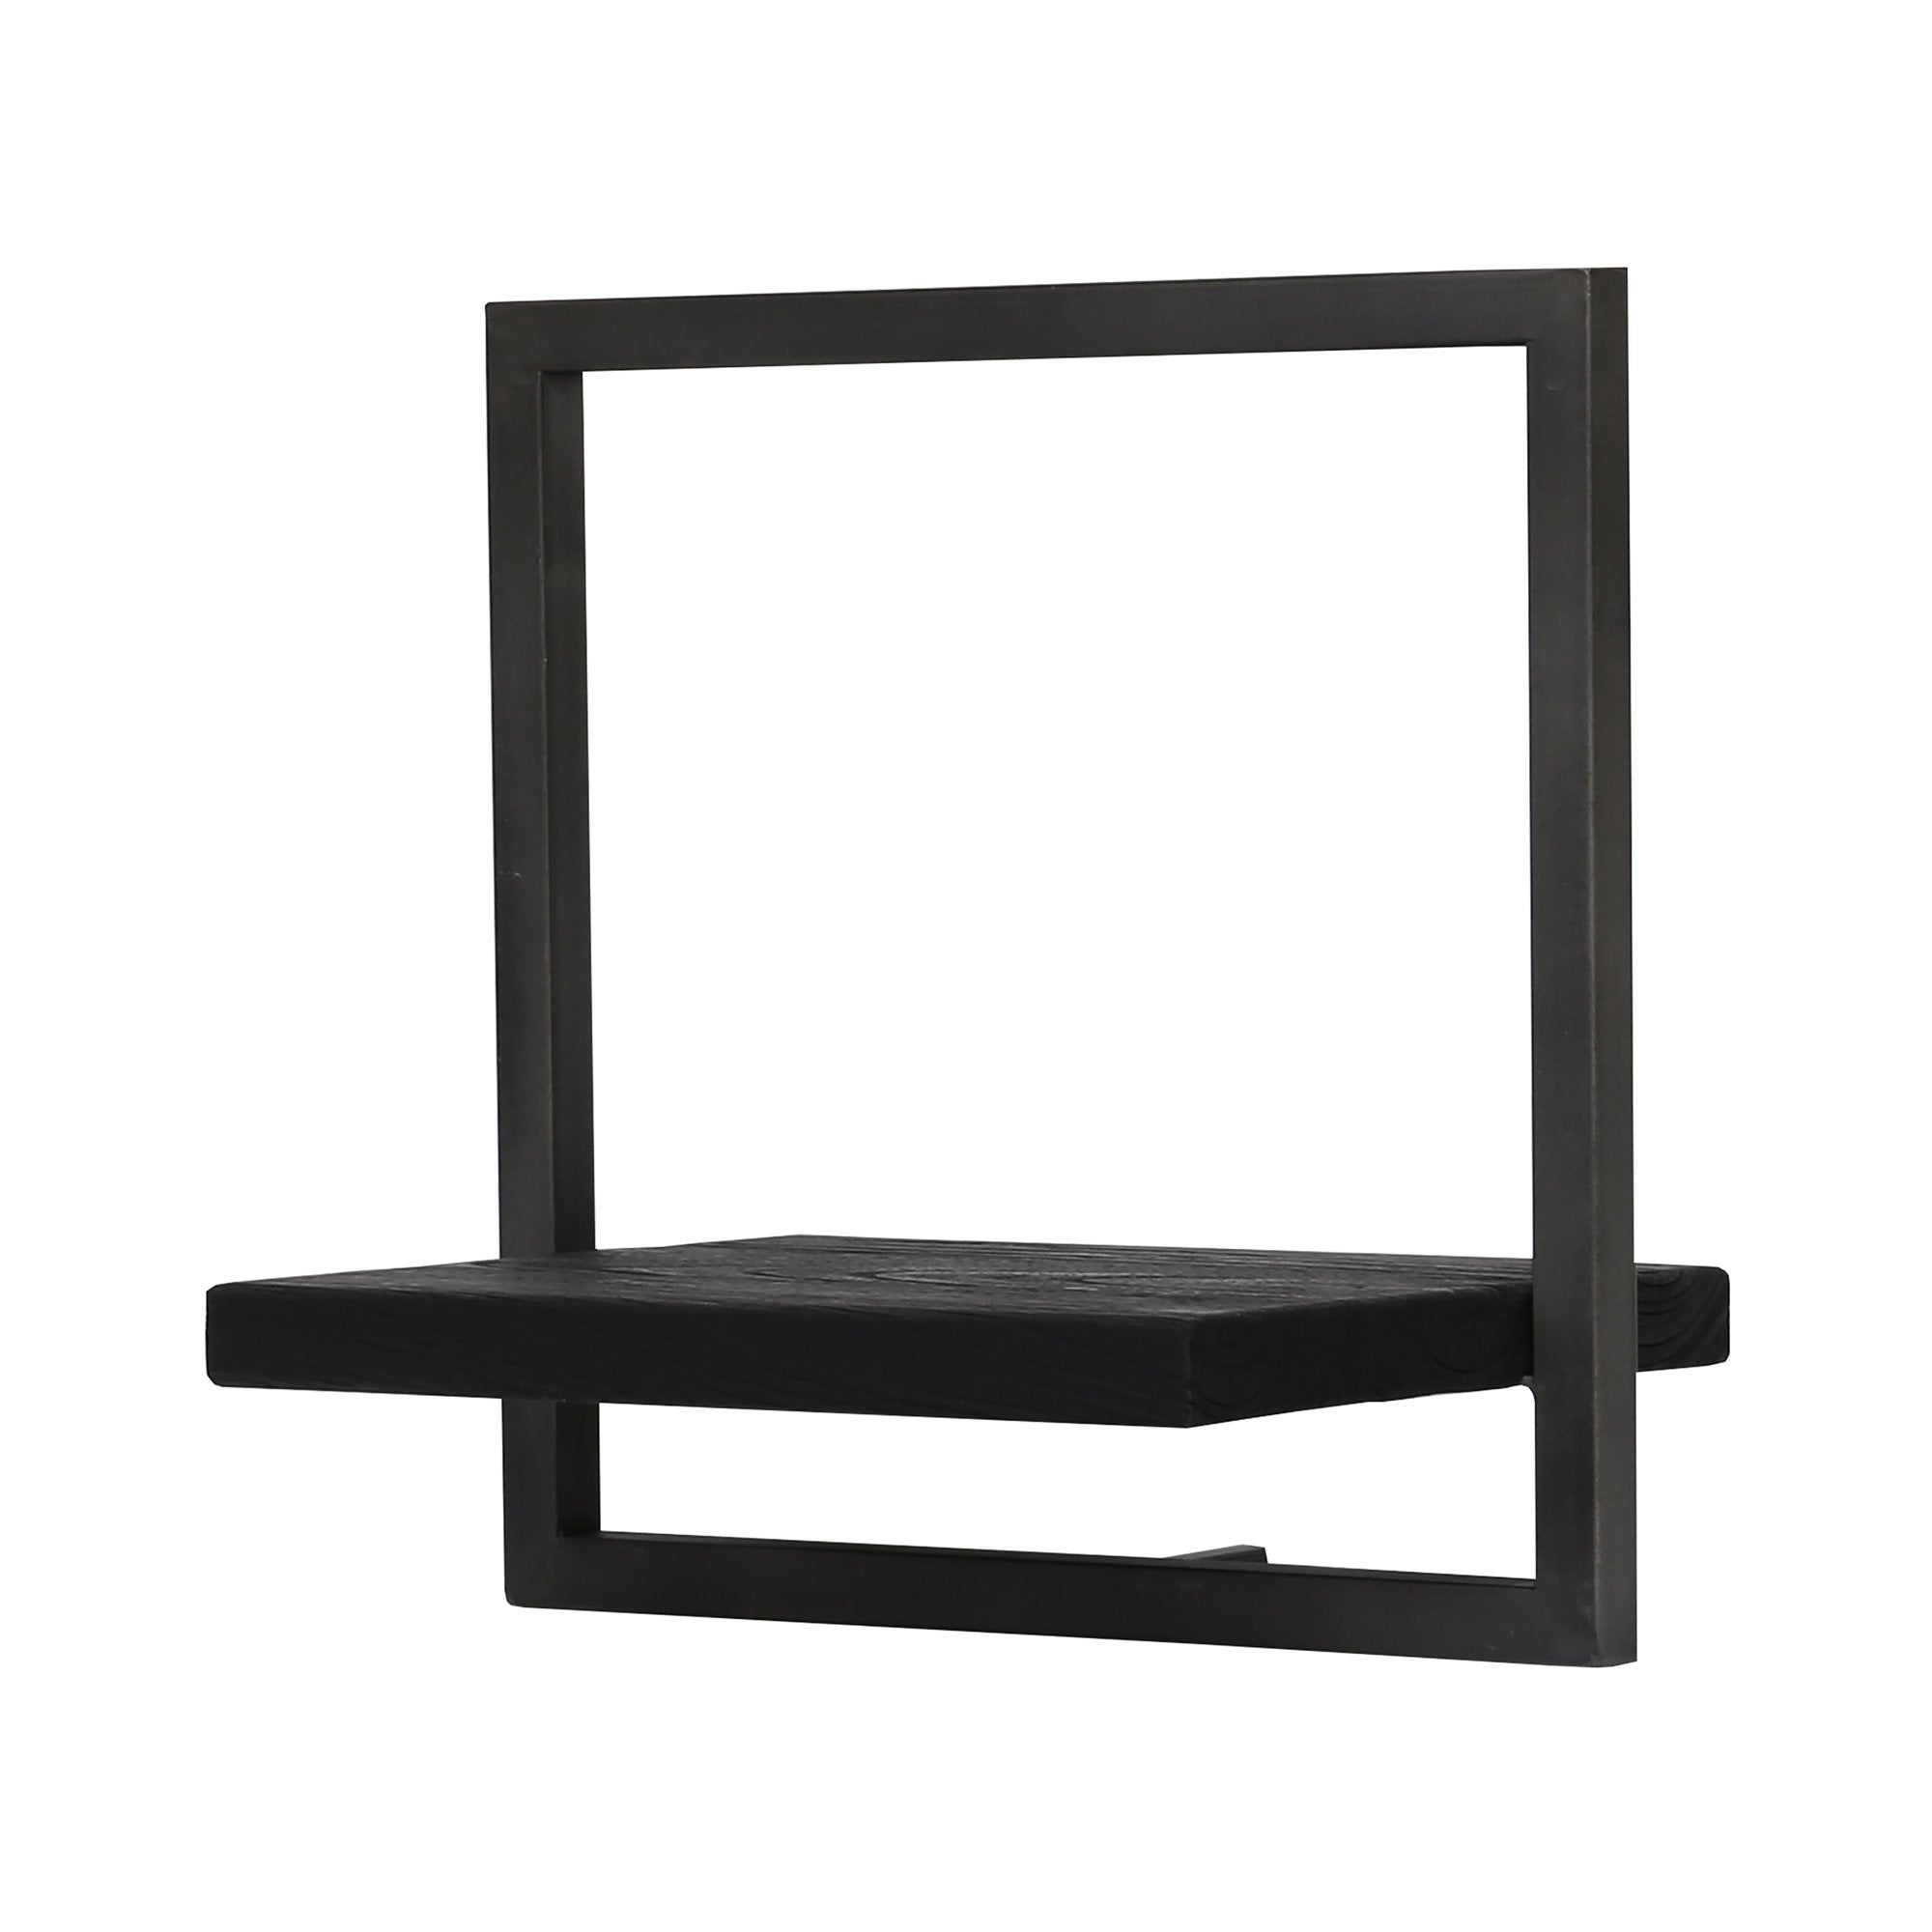 Picture of D-Bodhi Metal Frame Wall Box - Black Type B